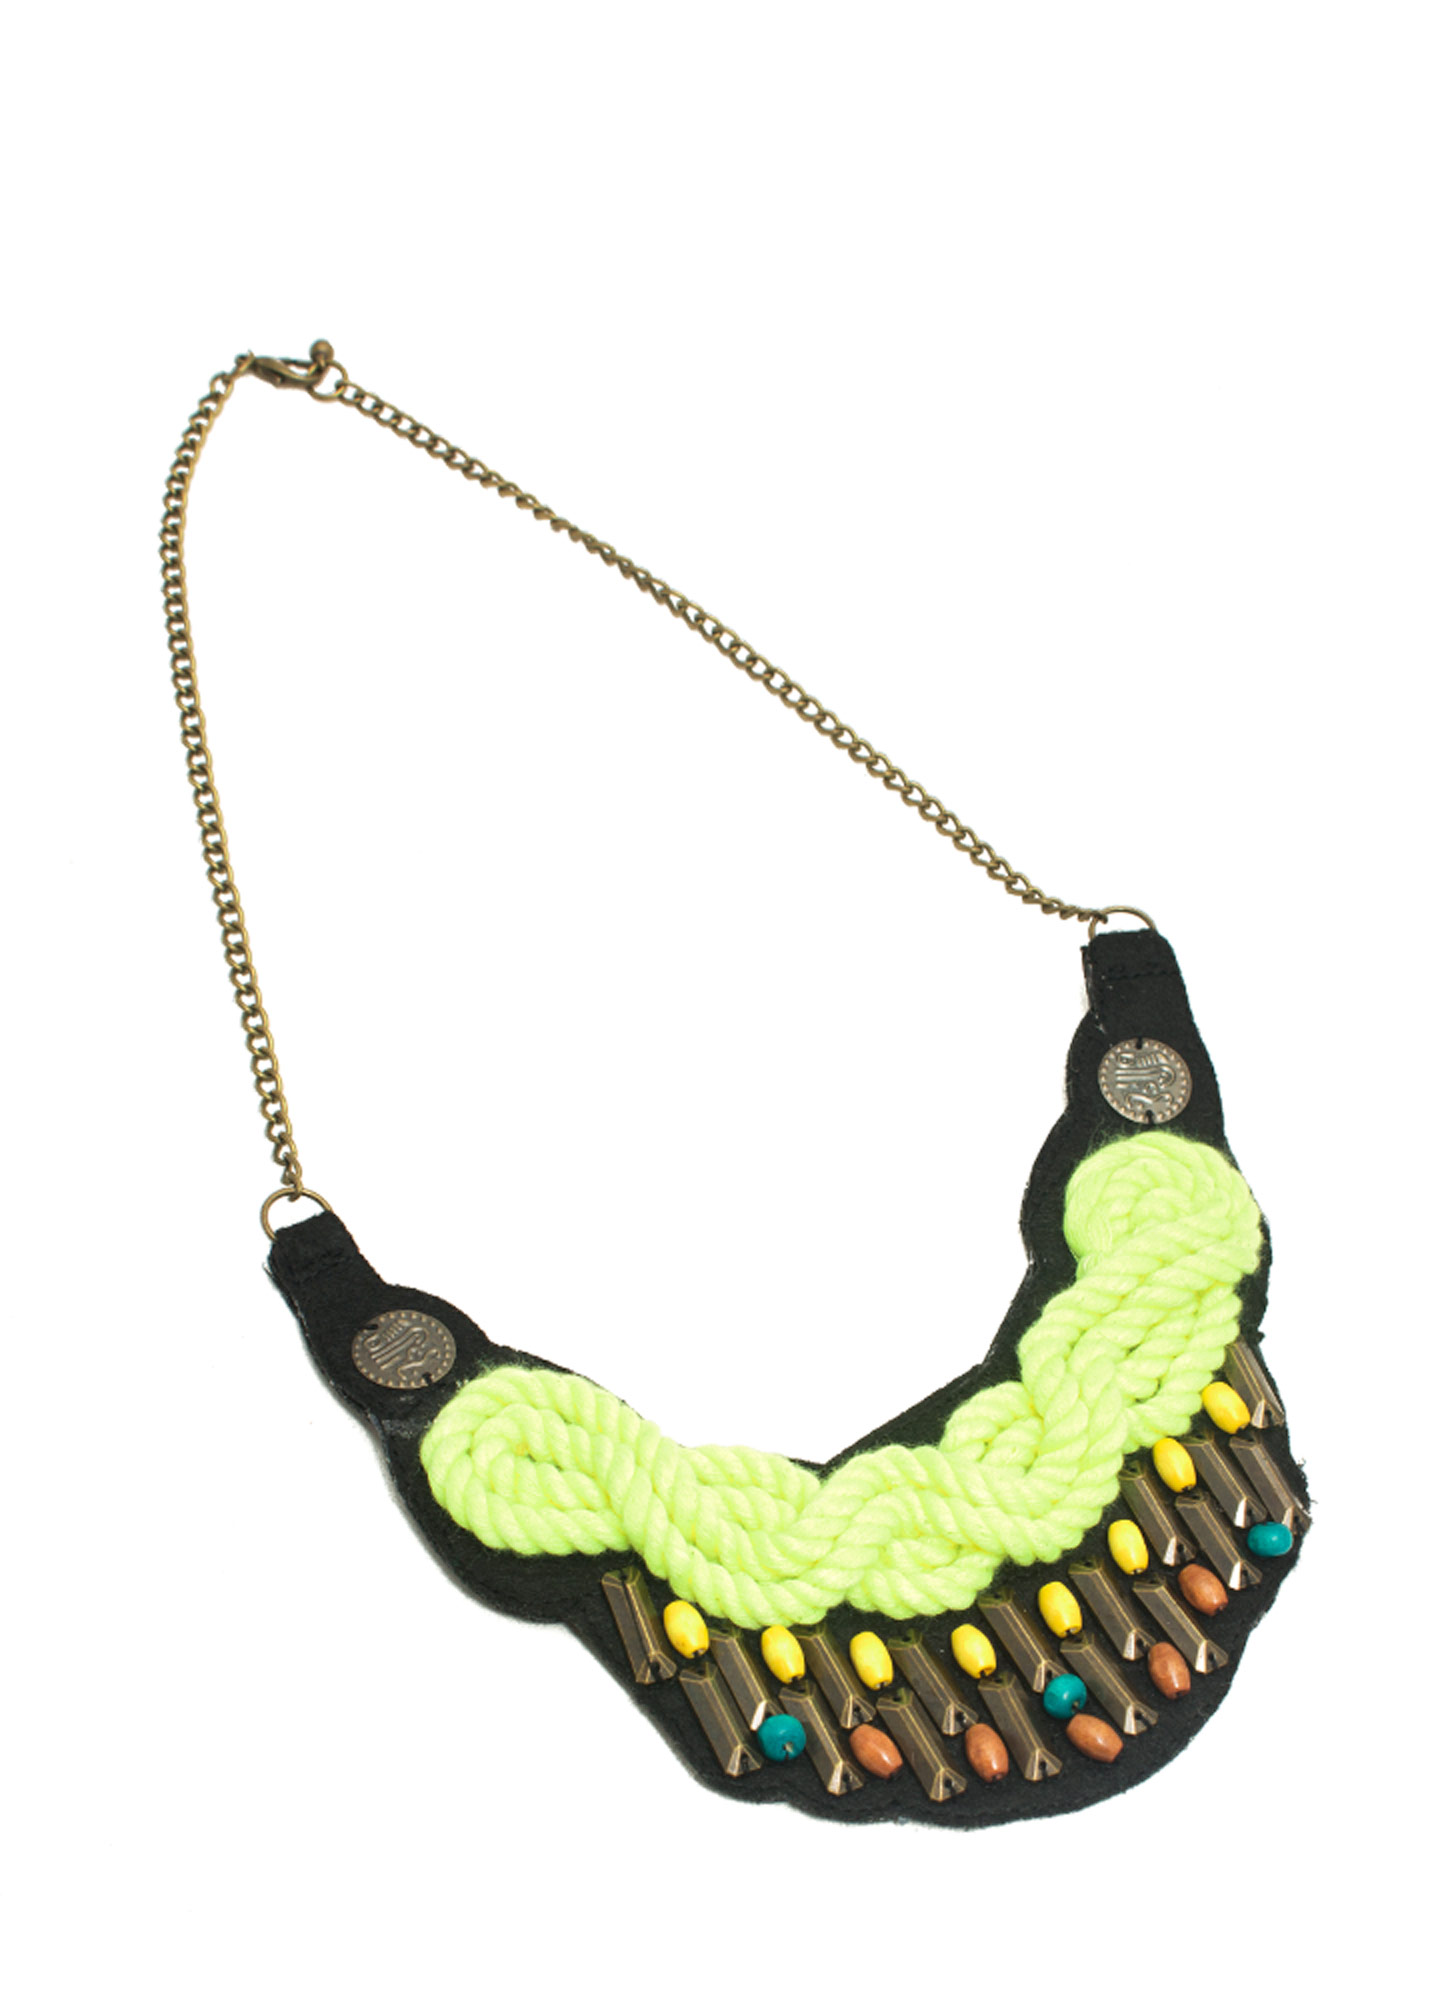 Knotted Rope Bib Necklace NYLLWMULTI